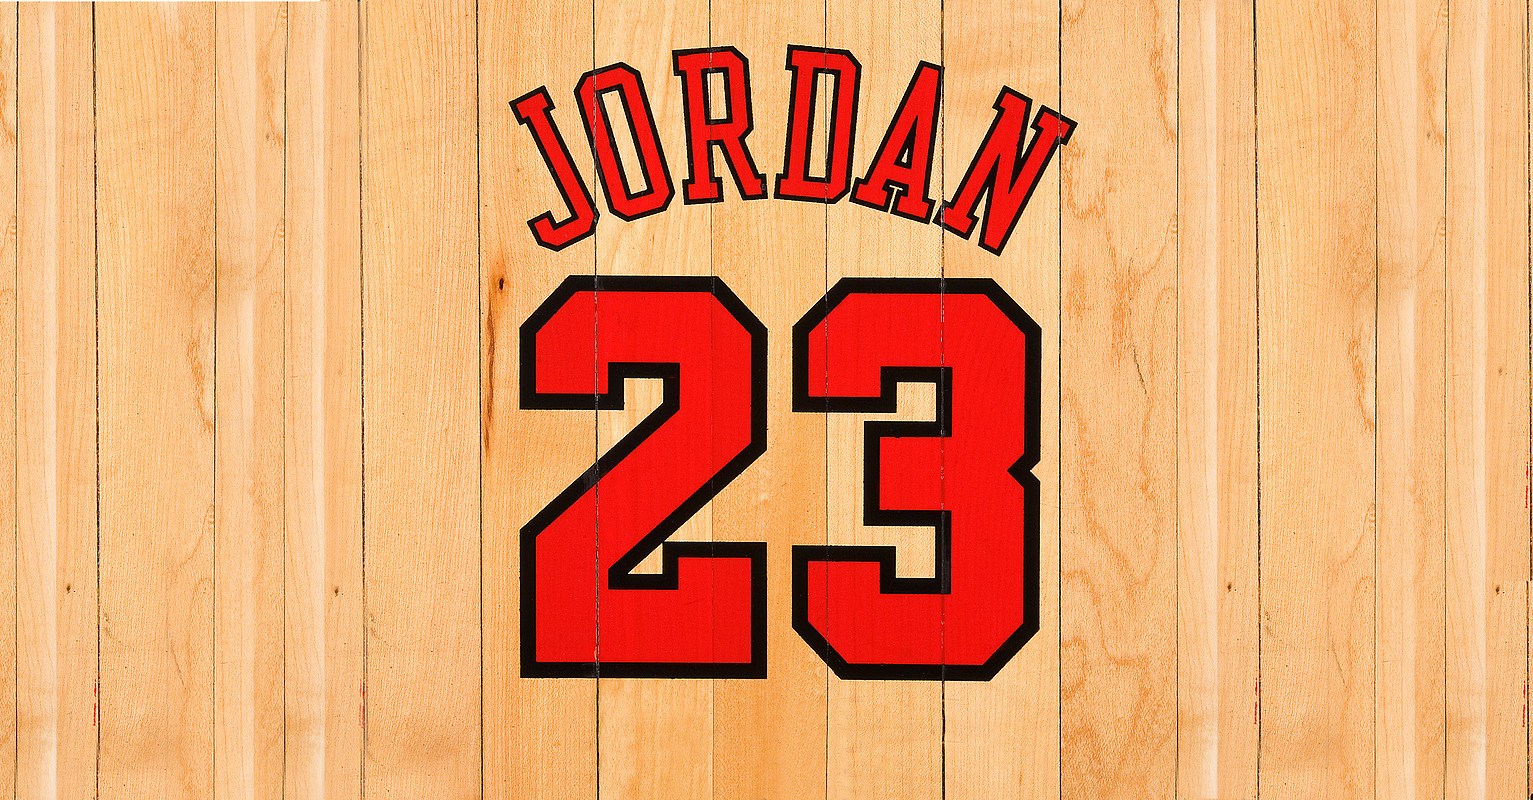 Wallpaper iphone jordan - Jordan 23 Free Wallpaper Download Download Free Michael Jordan 23